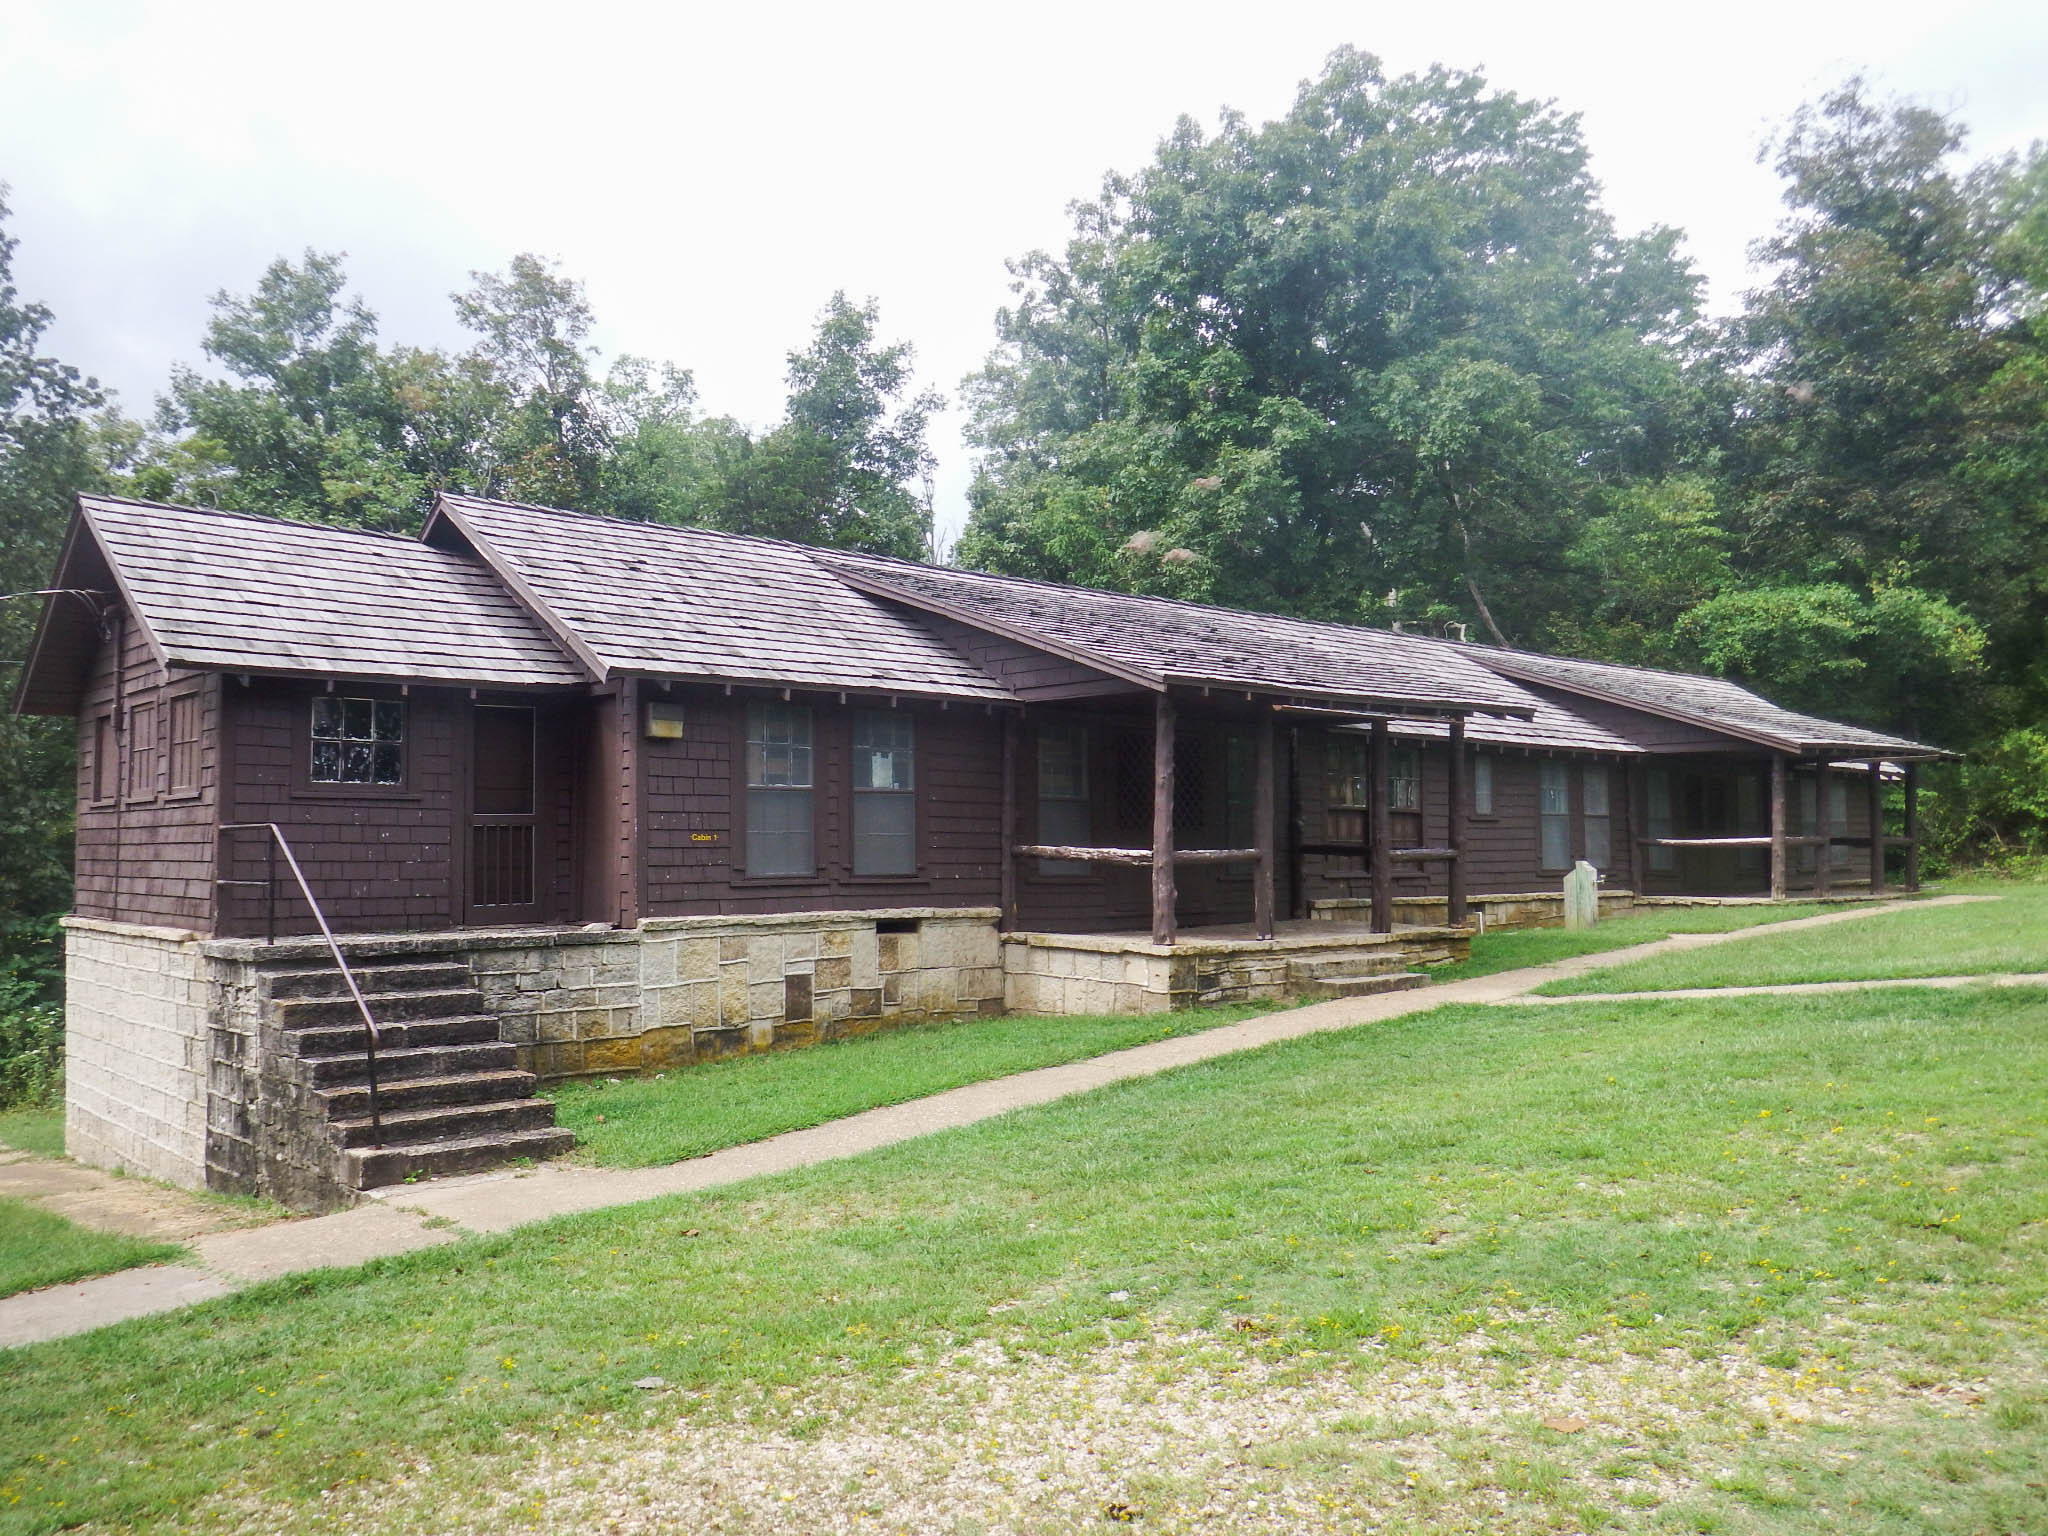 exterior of one of the cabins